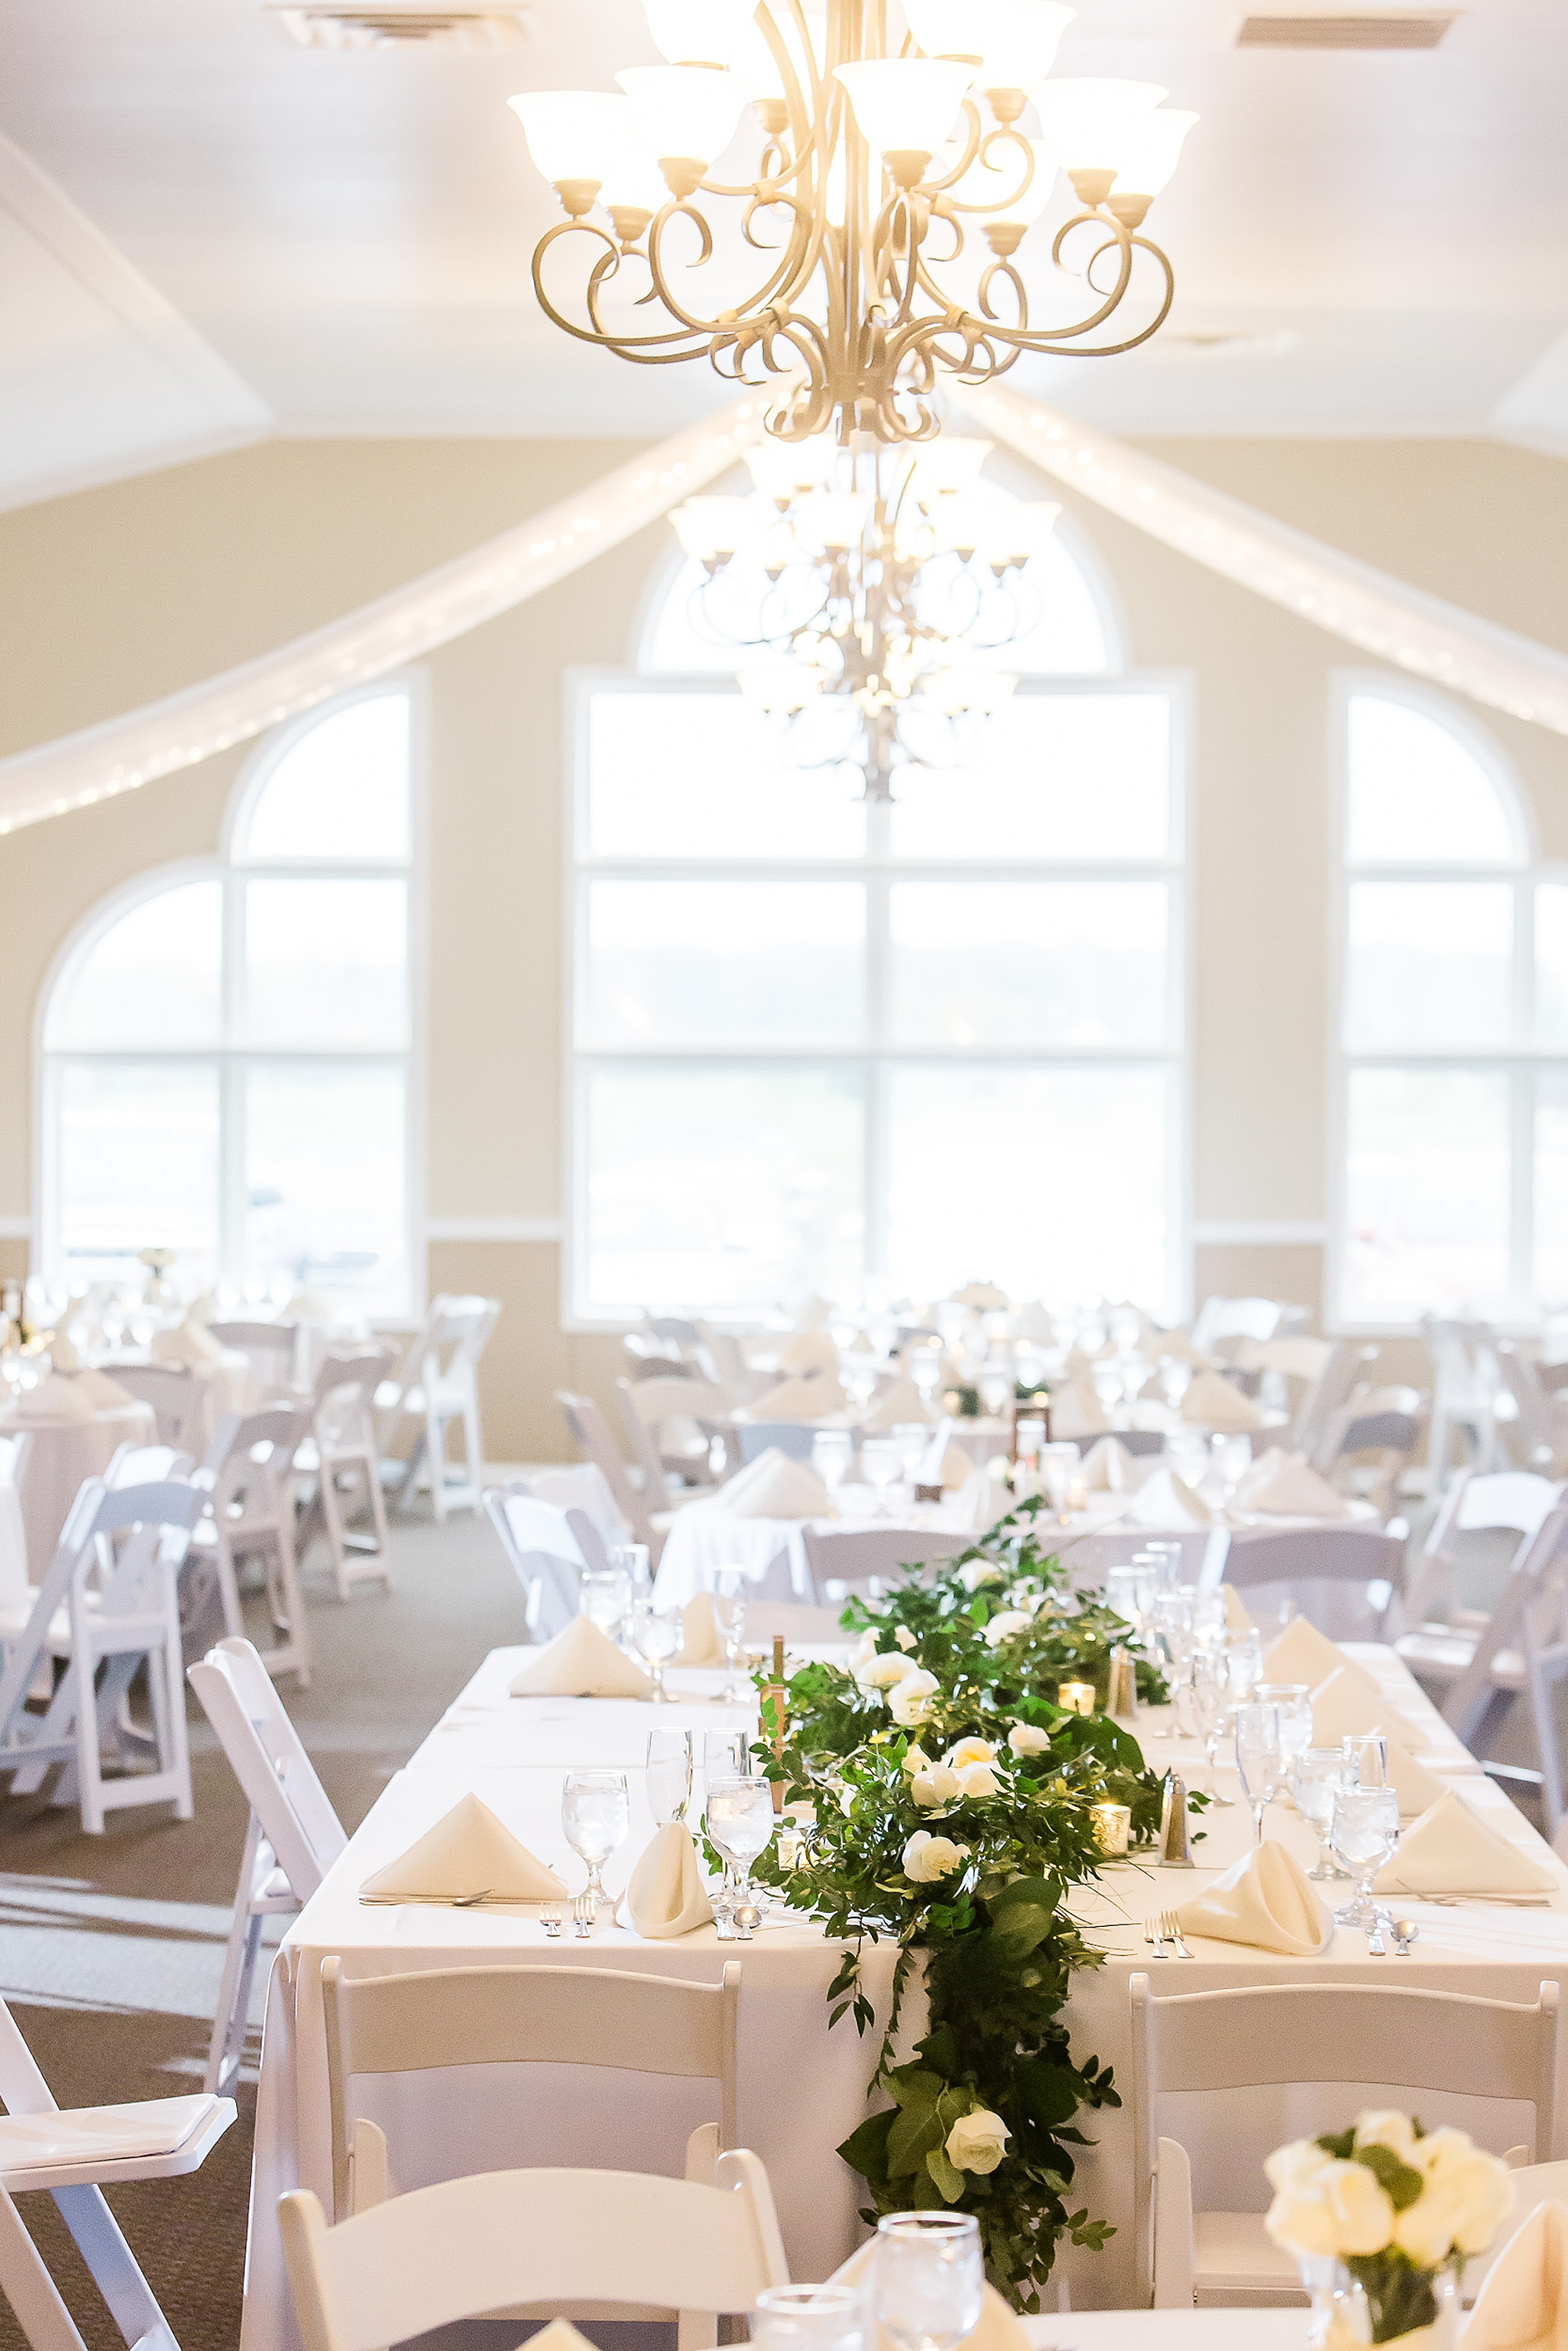 west lafayette indiana wedding photography tips to have a good wedding planning_0420.jpg